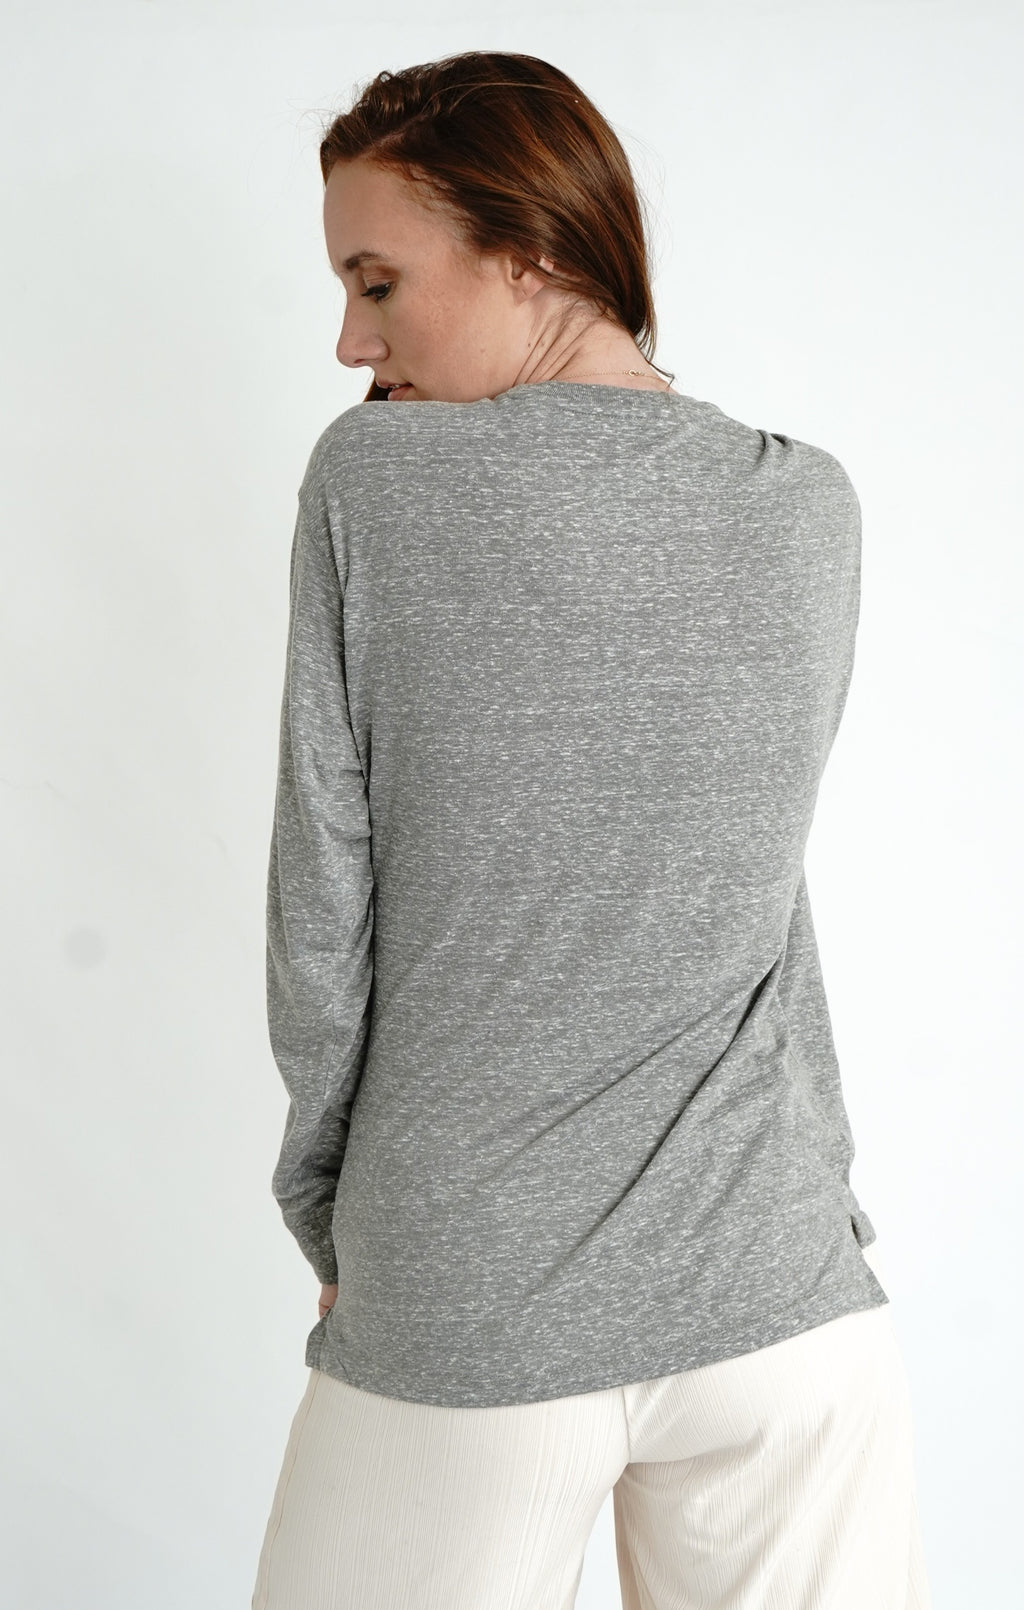 Knobi Long Sleeve Crew